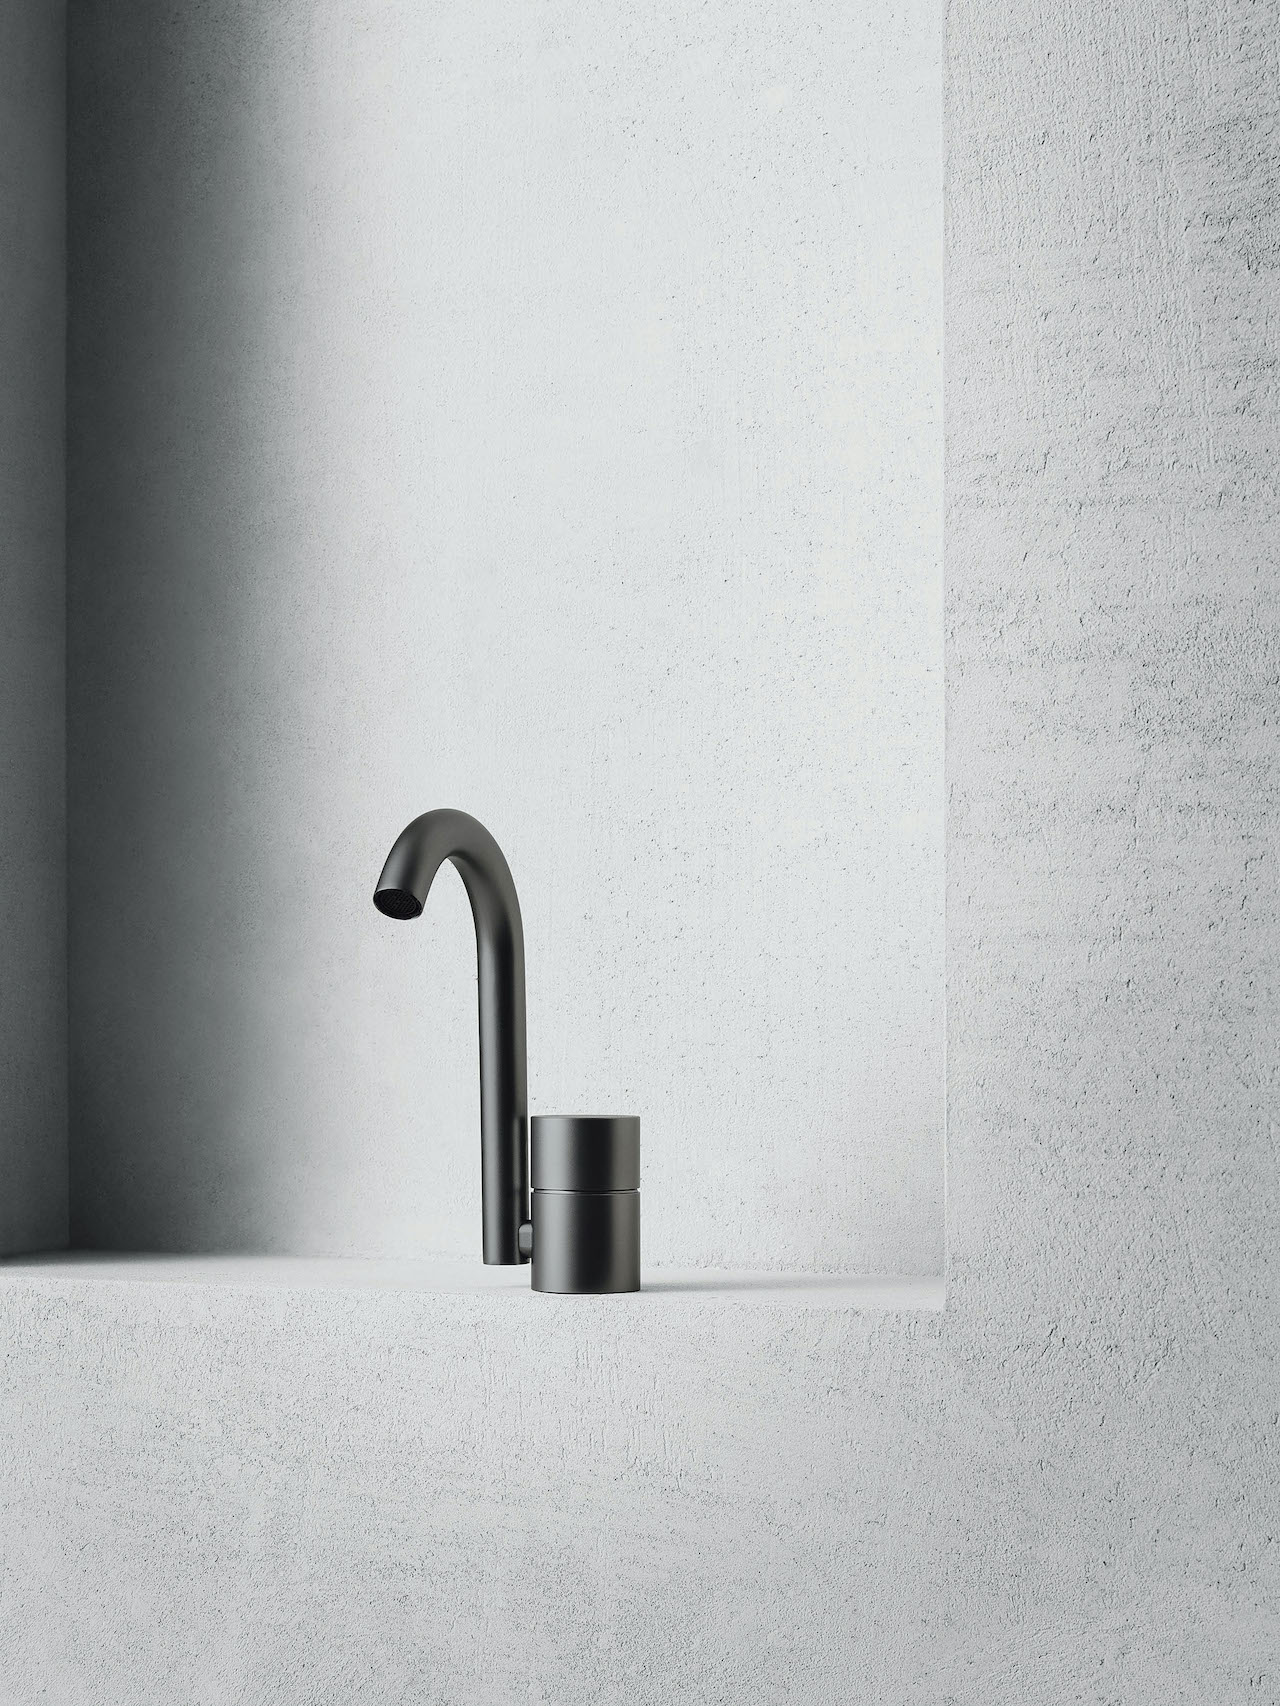 Mixer AA/27 Aboutwater, design Michael Anastassiades 2019, Boffi and Fantini